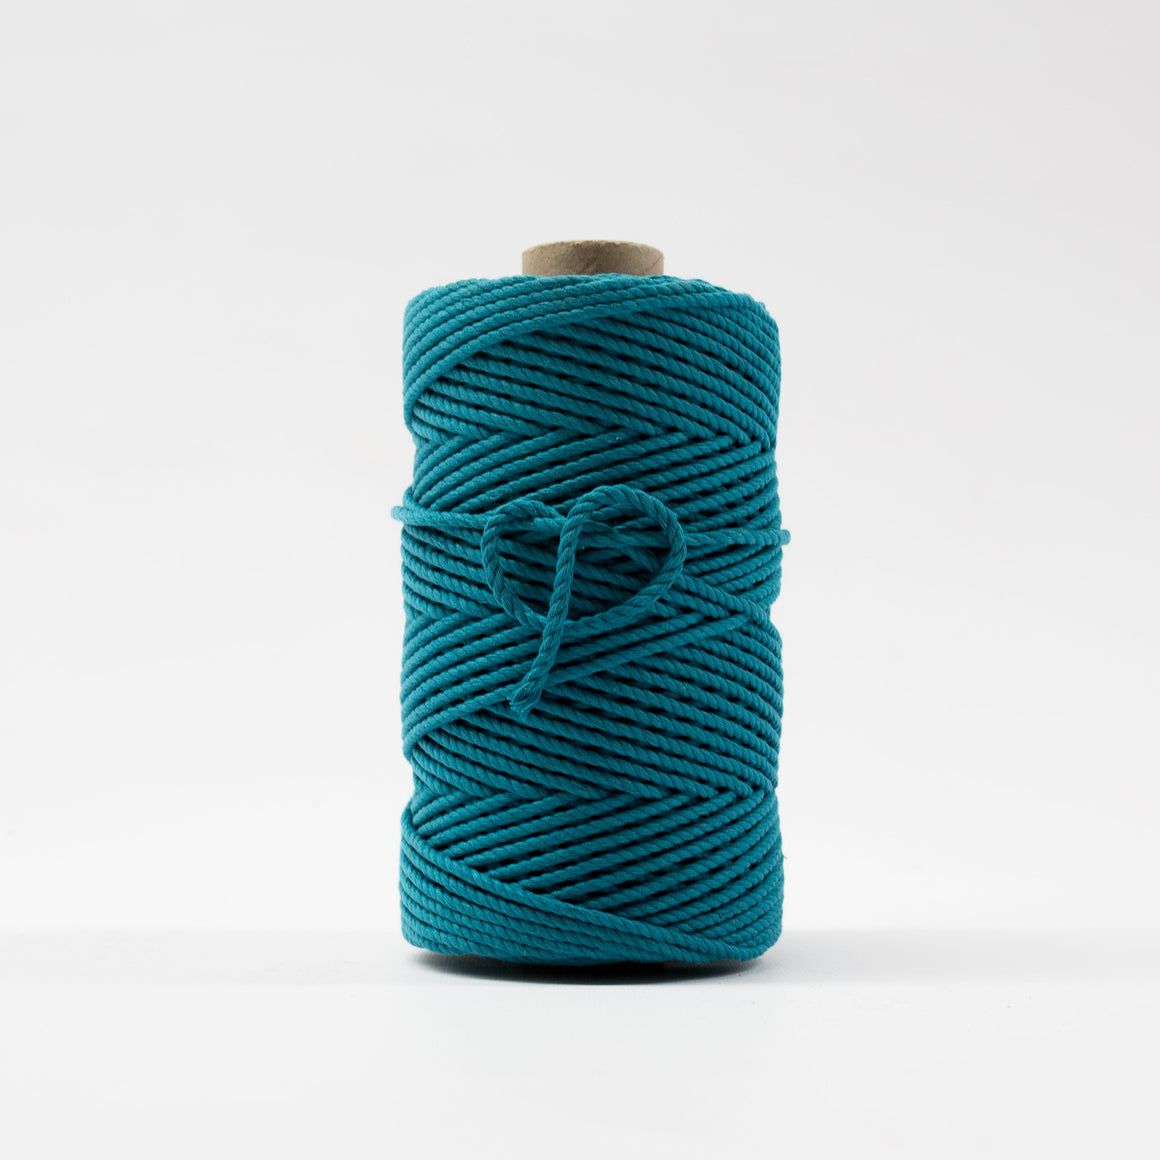 Mary Maker Studio Luxe Colour Cotton 4mm 1KG Recycled Luxe Macrame Rope // Rockpool Blue macrame cotton macrame rope macrame workshop macrame patterns macrame